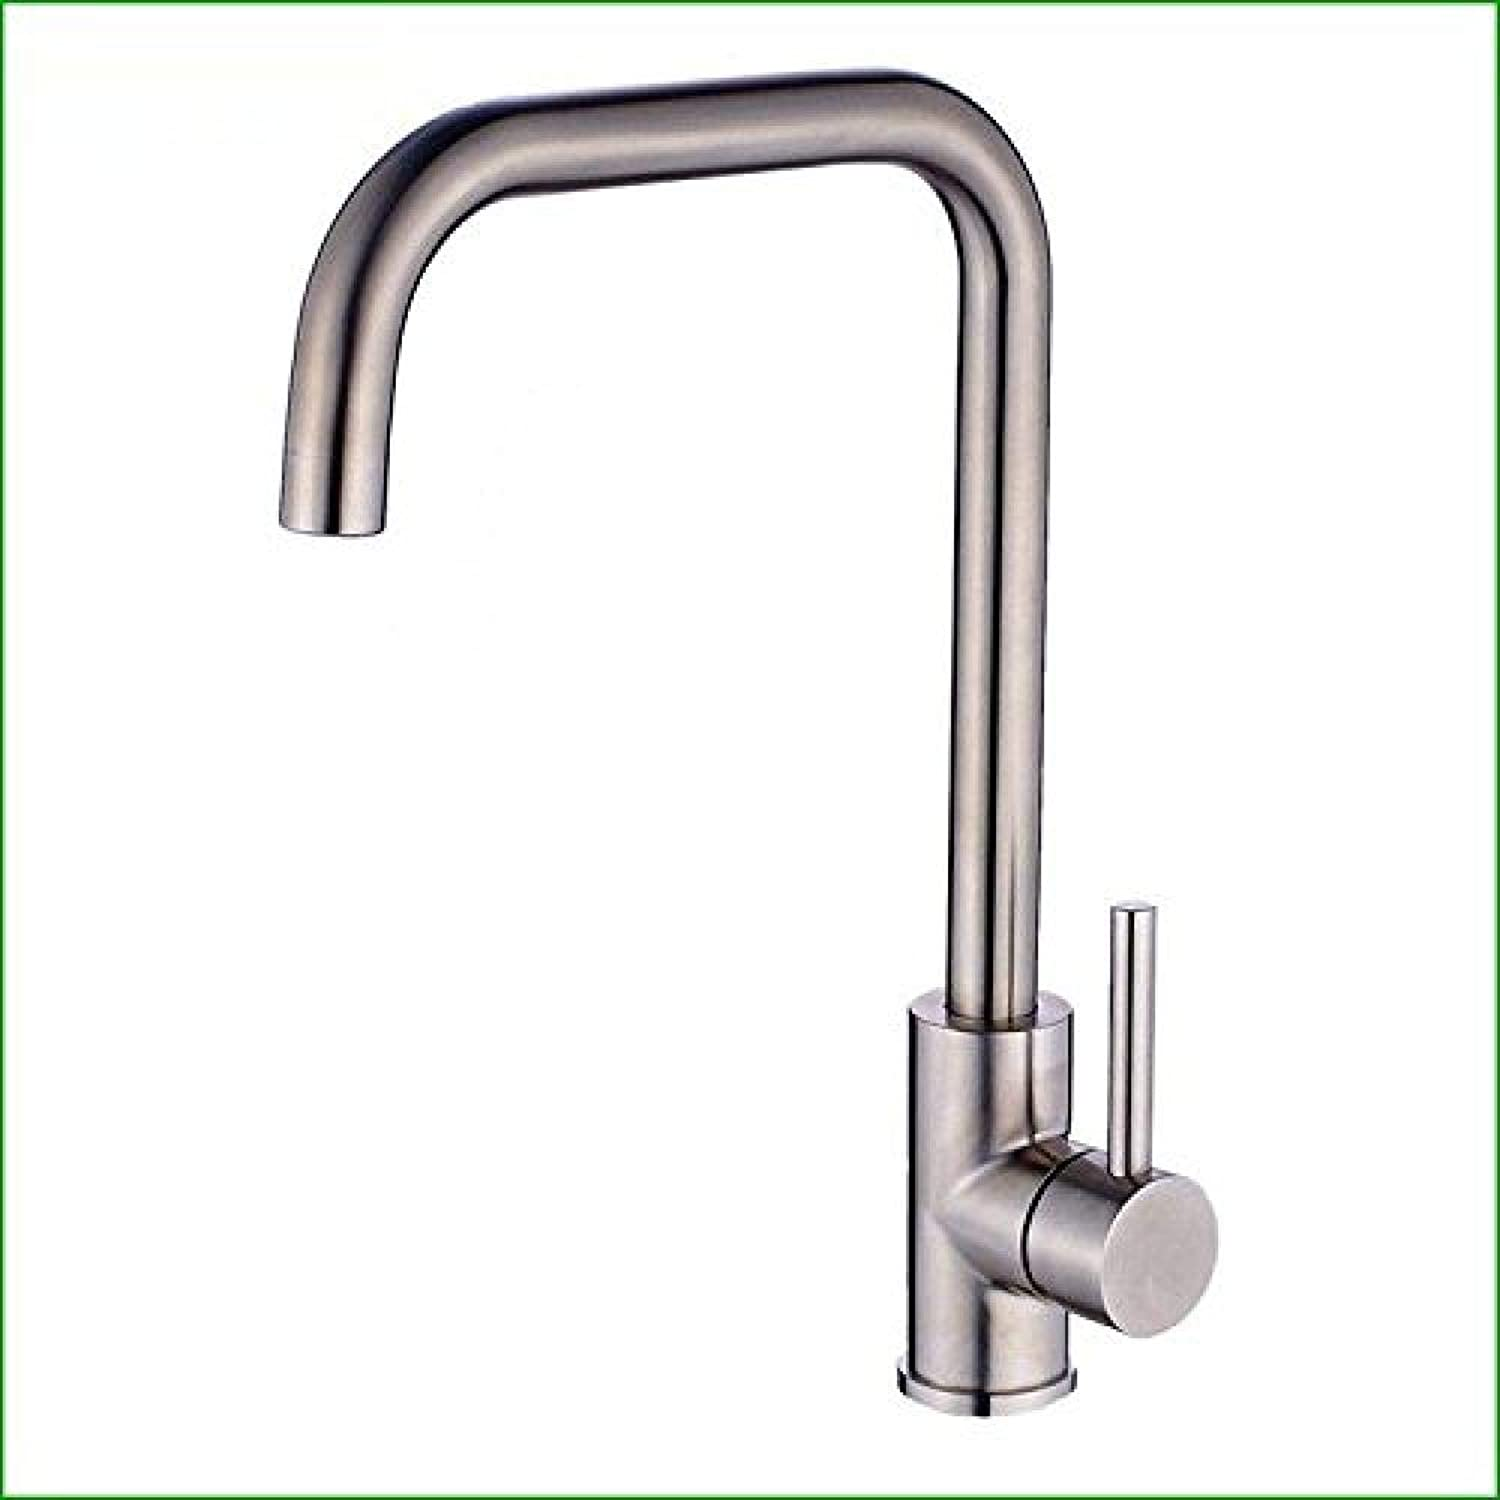 Honcx Copper Hot and Cold Kitchen Sink Taps Kitchen Faucet Stainless Steel Faucet Kitchen Basin Hot and Cold Single Hole redating Sink Faucet Dish Drawing Sinks